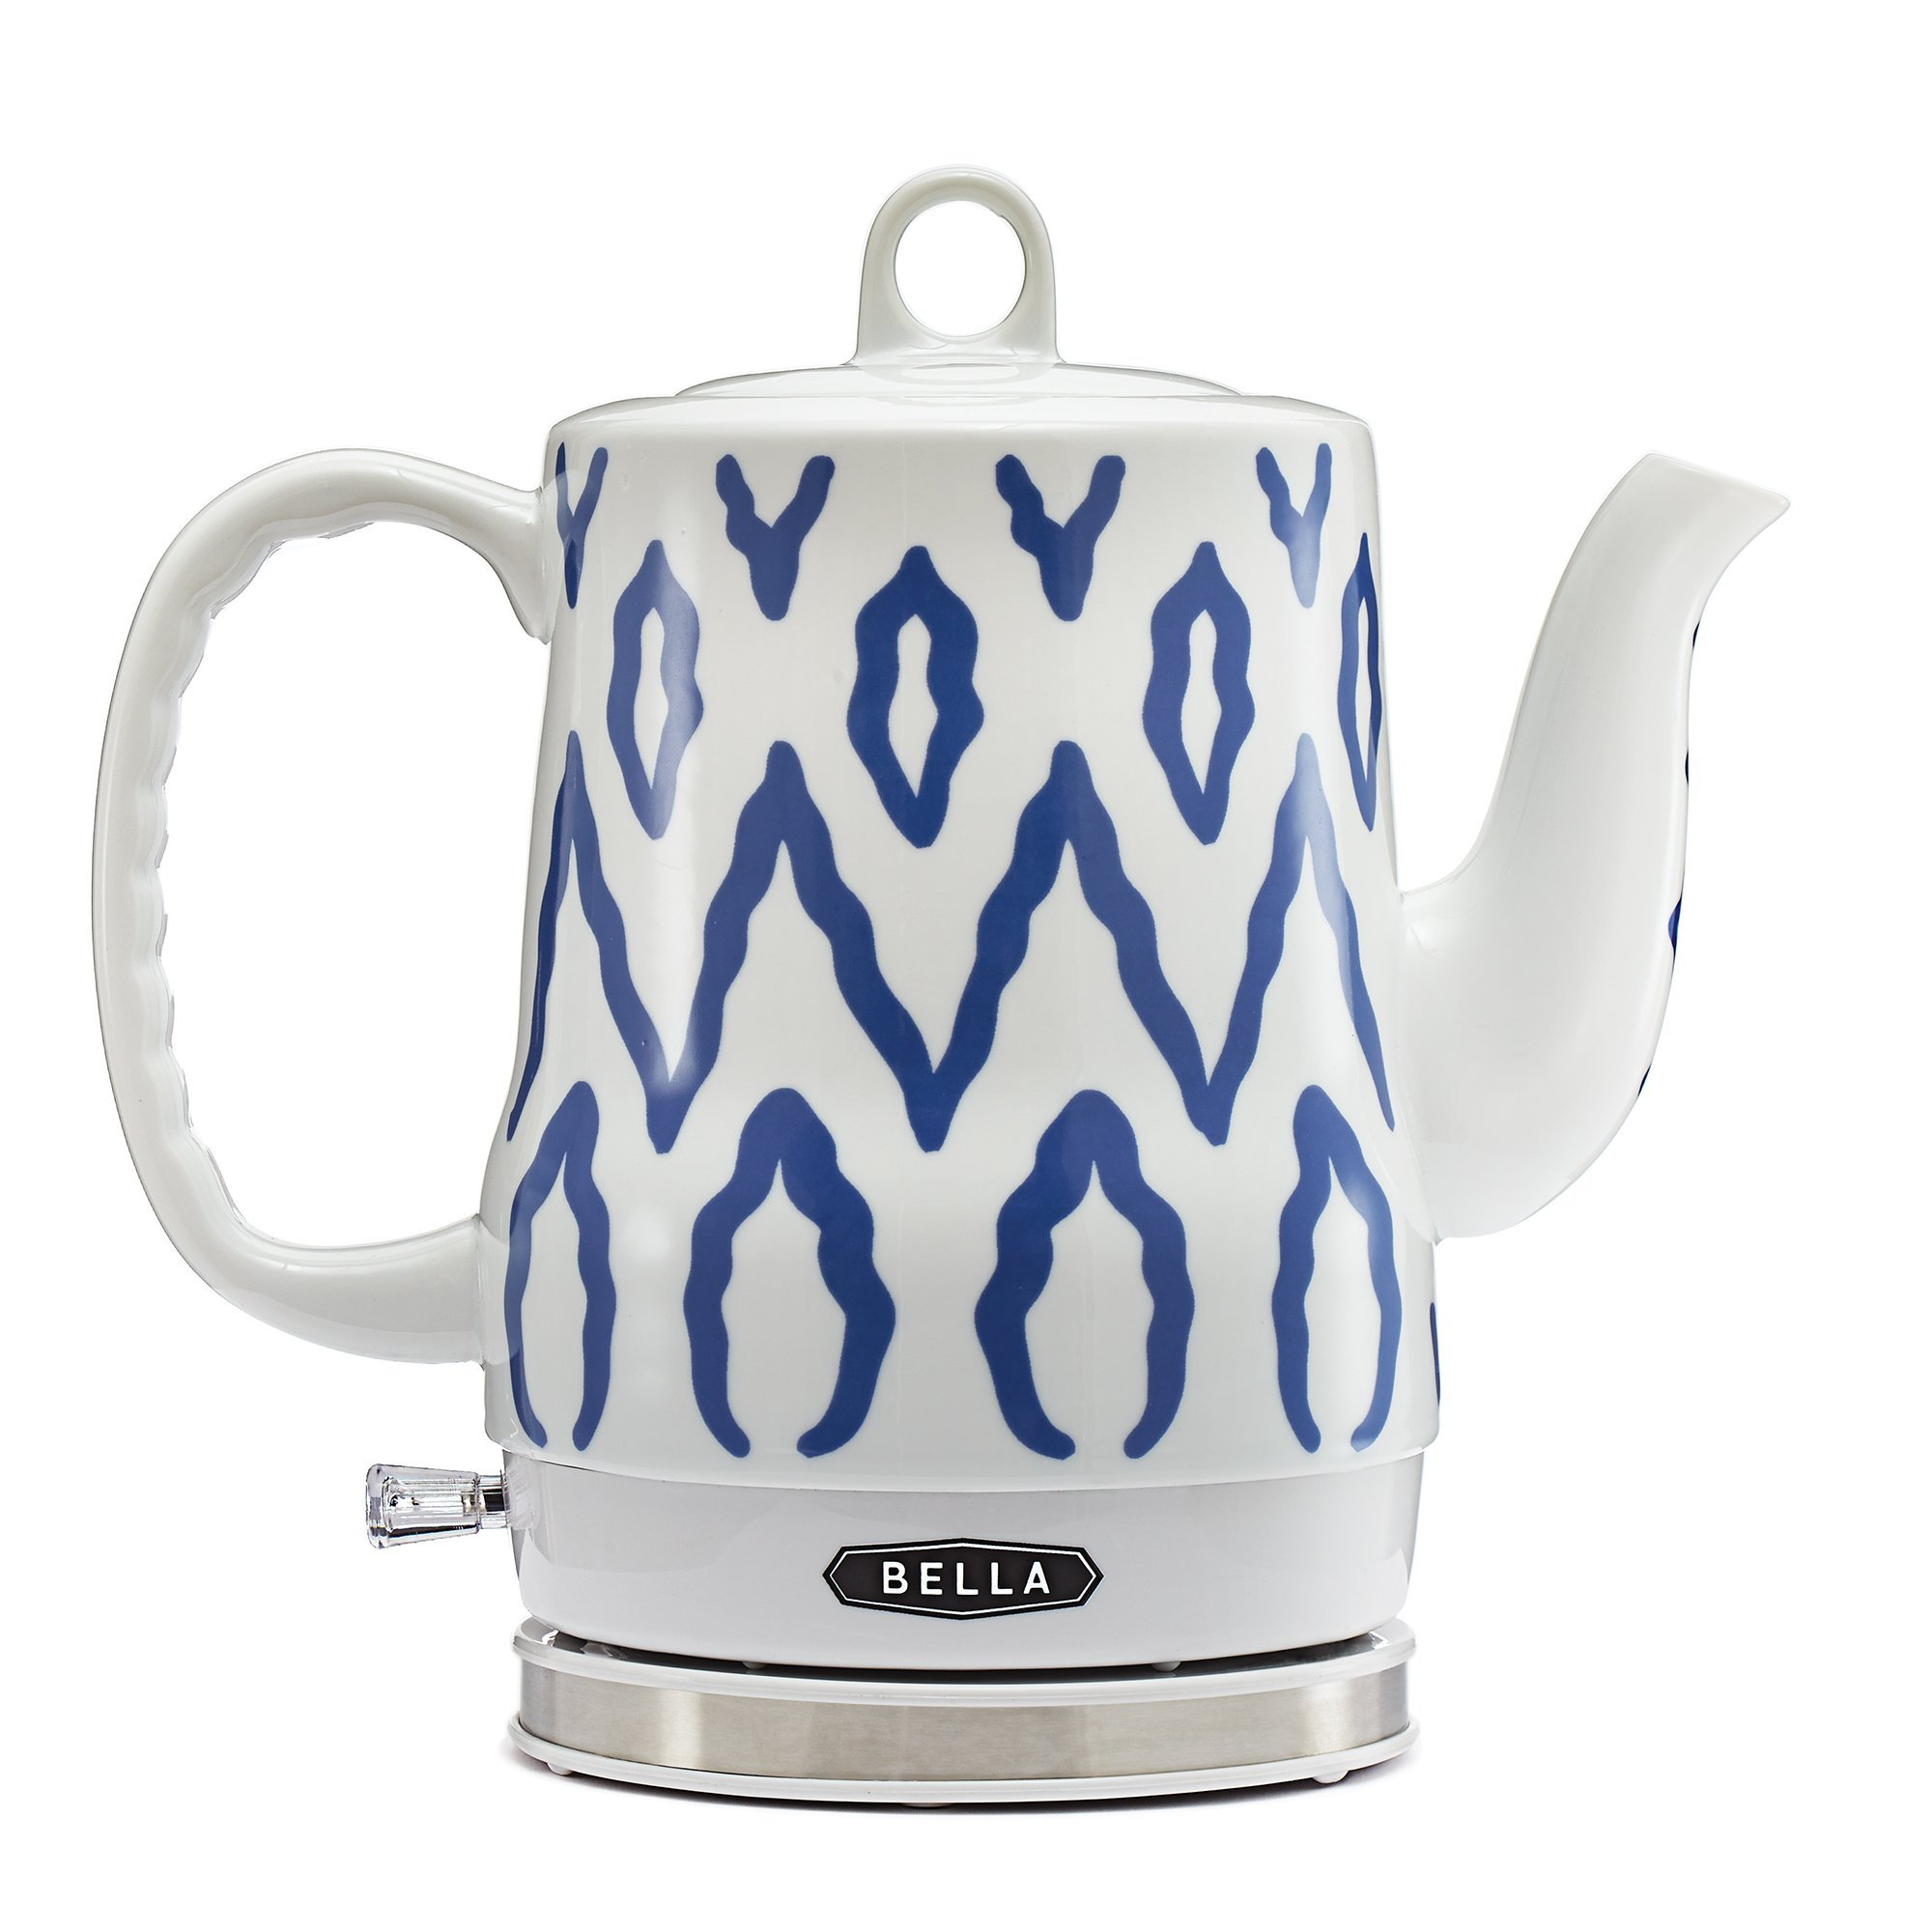 BELLA 1.2L Electric Ceramic Tea Kettle with Detachable Base & Boil Dry Protection (13724) Electric Tea Kettle with Automatic Shut Off & Detachable Swivel Base